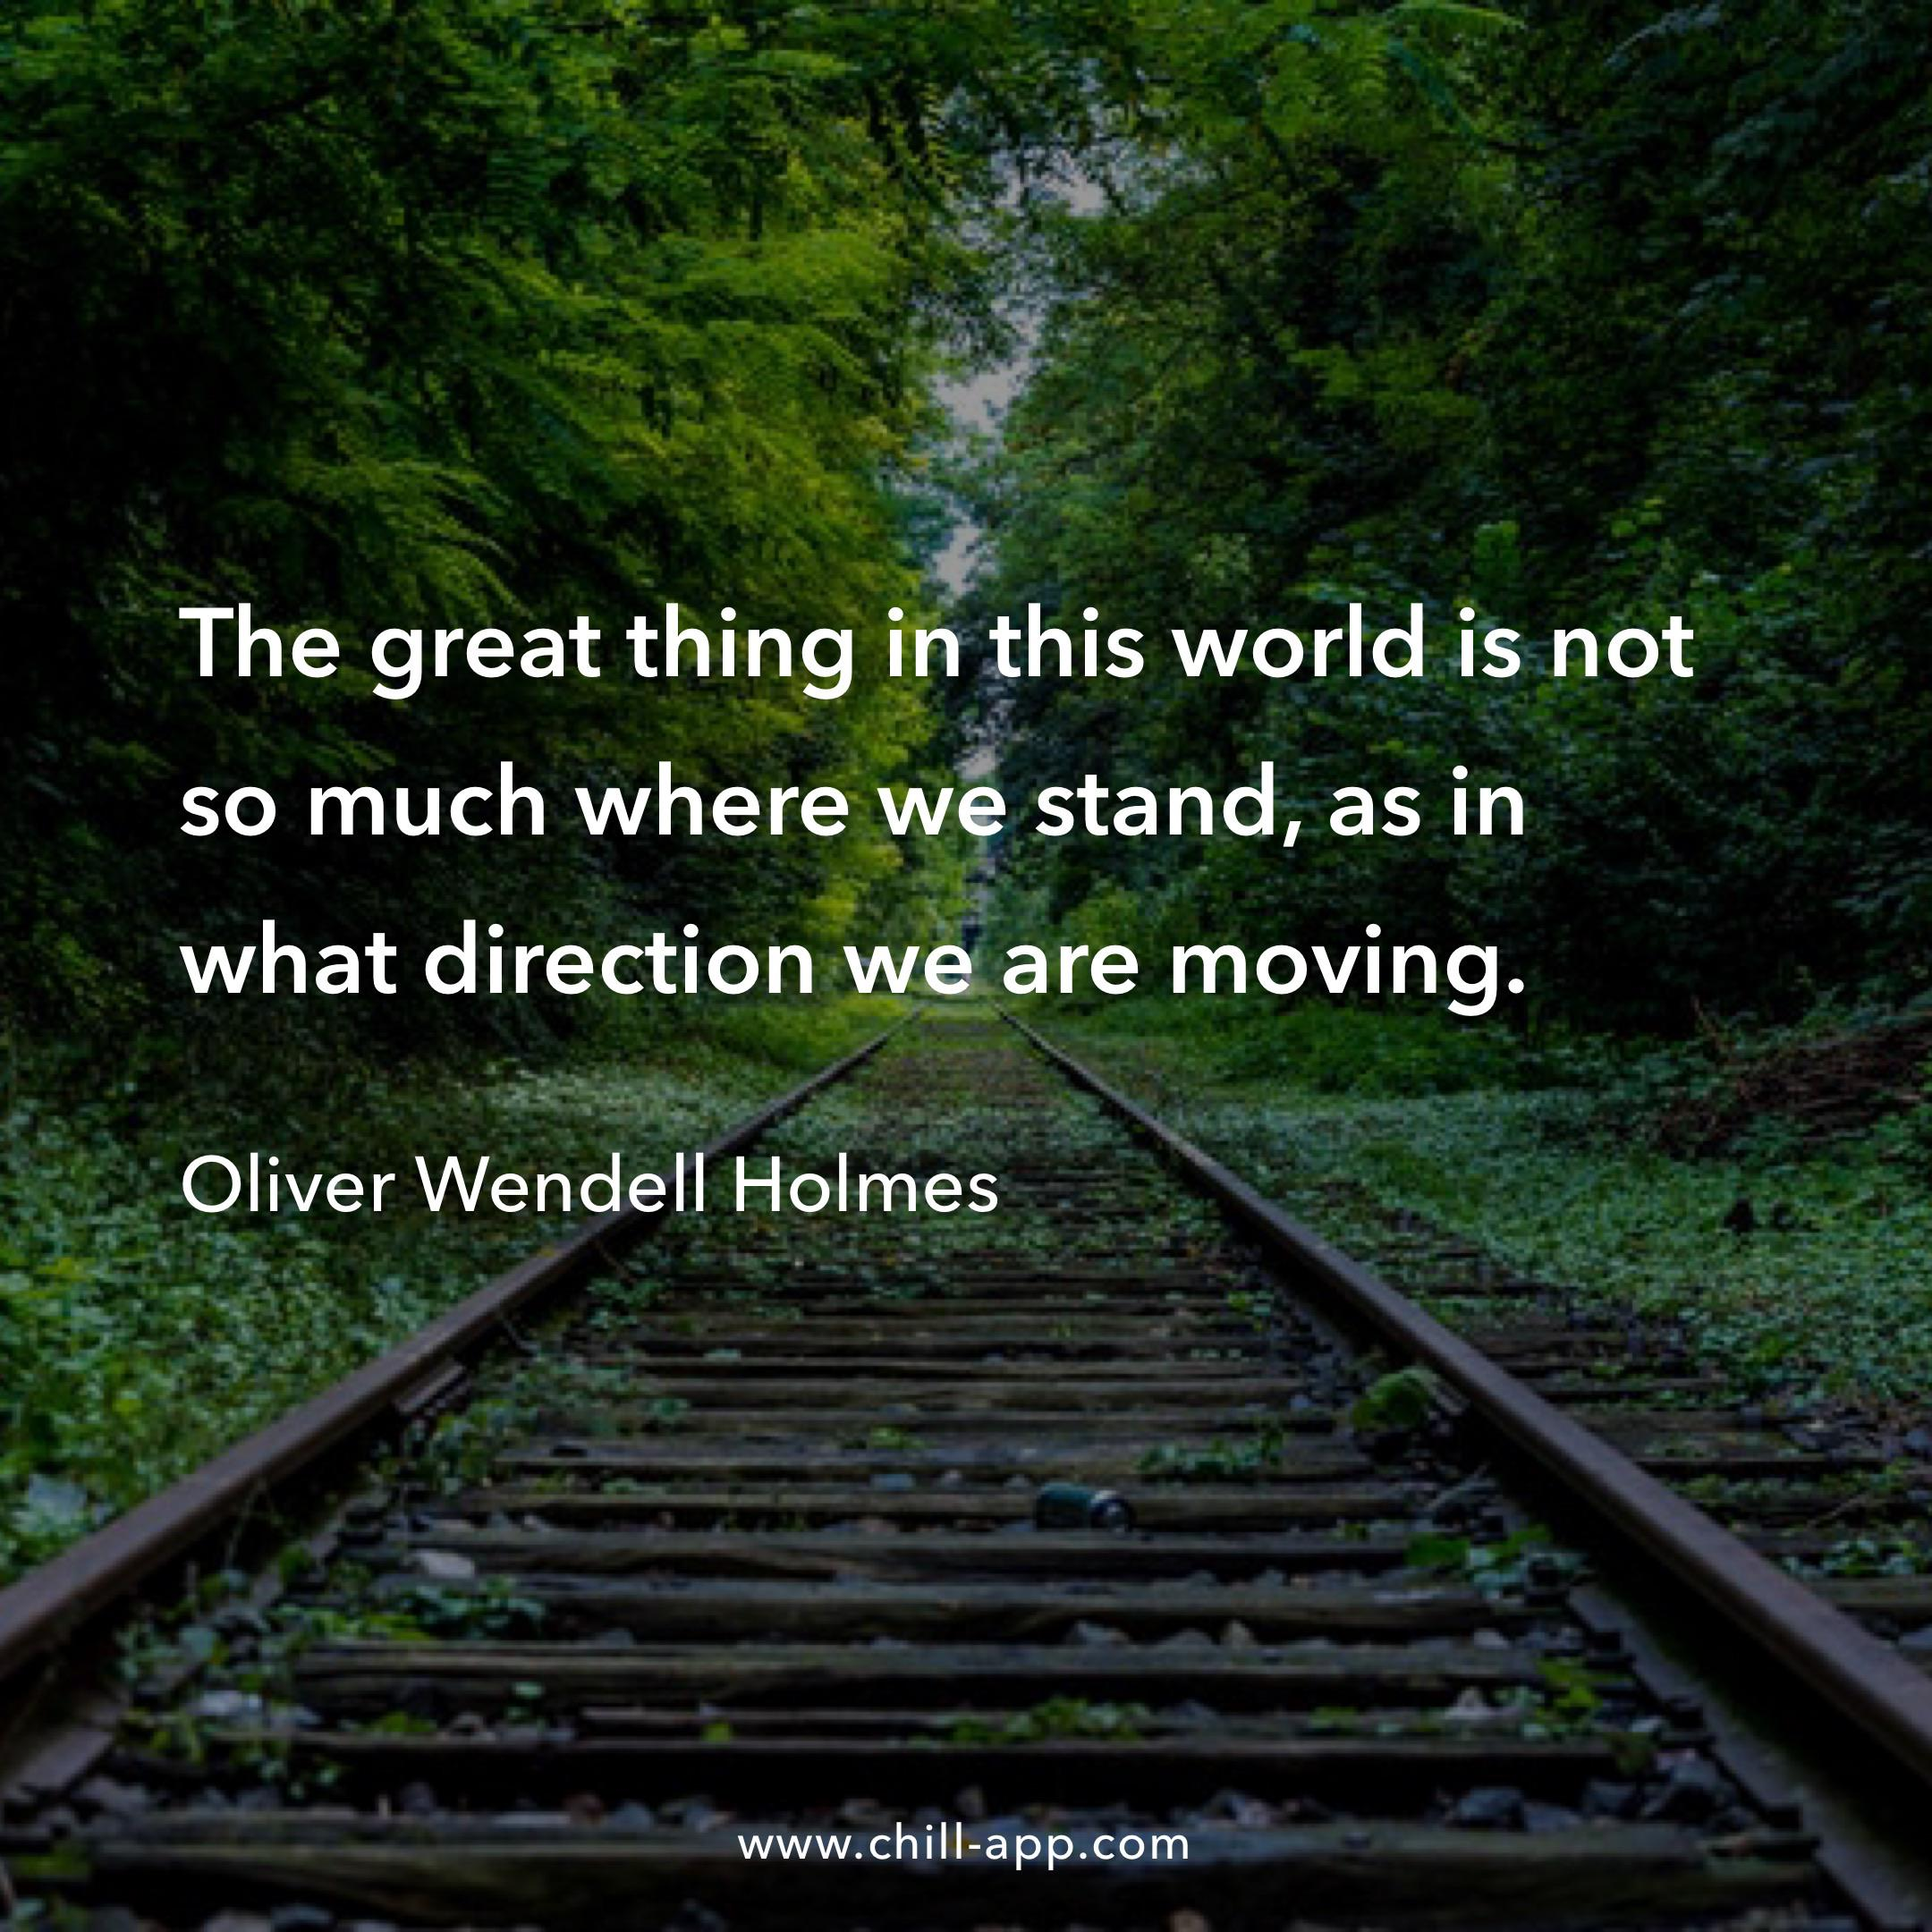 The great thing in this world is not so much where we stand, as in what direction we are moving – Oliver Wendell Holmes [Image]